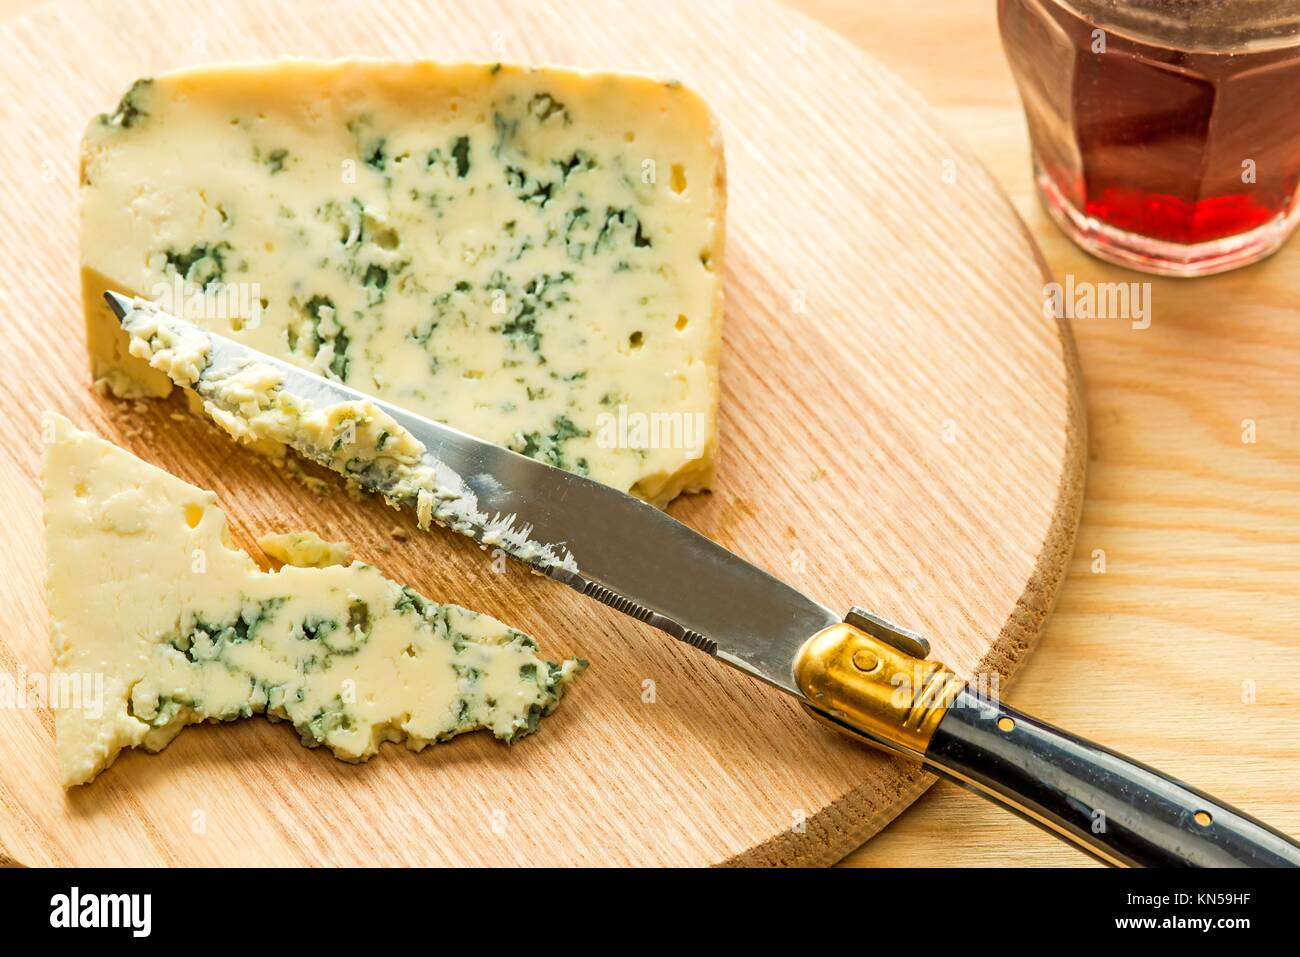 Blue french cheese. - Stock Image